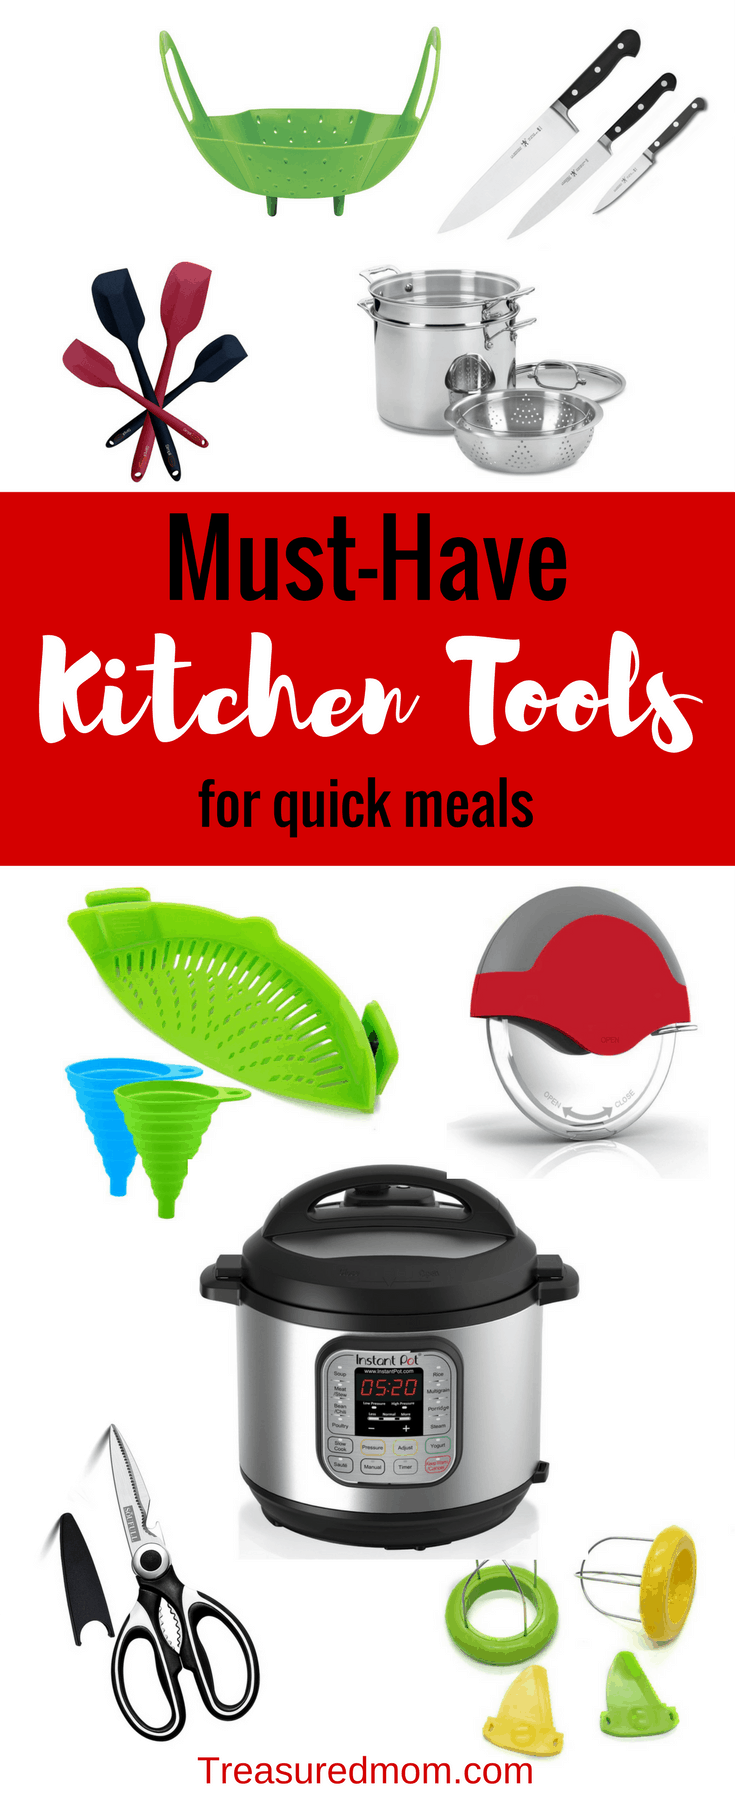 Have the right kitchen tools for quick meals and you'll be ready for busy nights. Eat at home to save money, time and health. You can quit eating out today. These make perfect gifts for moms, gifts for cooks, and gifts for women.